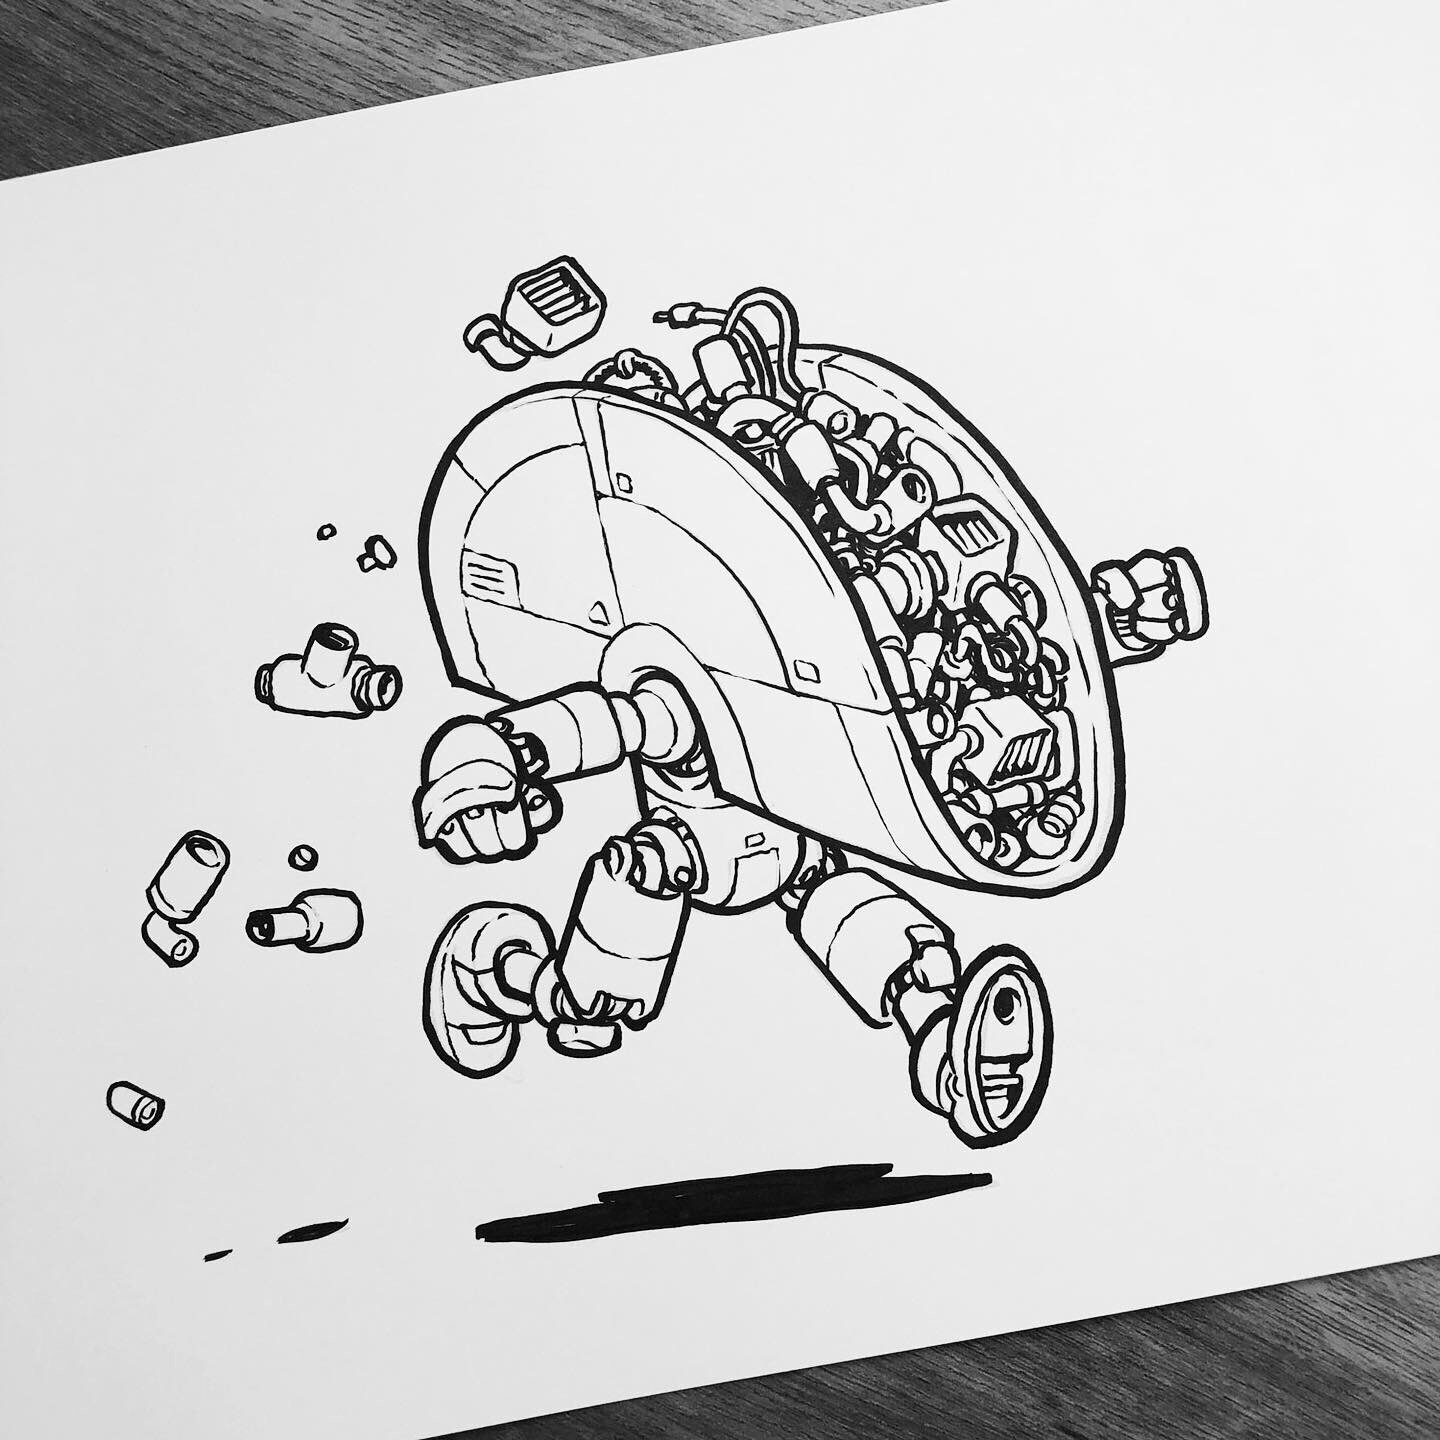 New ink class from the creator of Inktober! — Society of Visual Storytelling